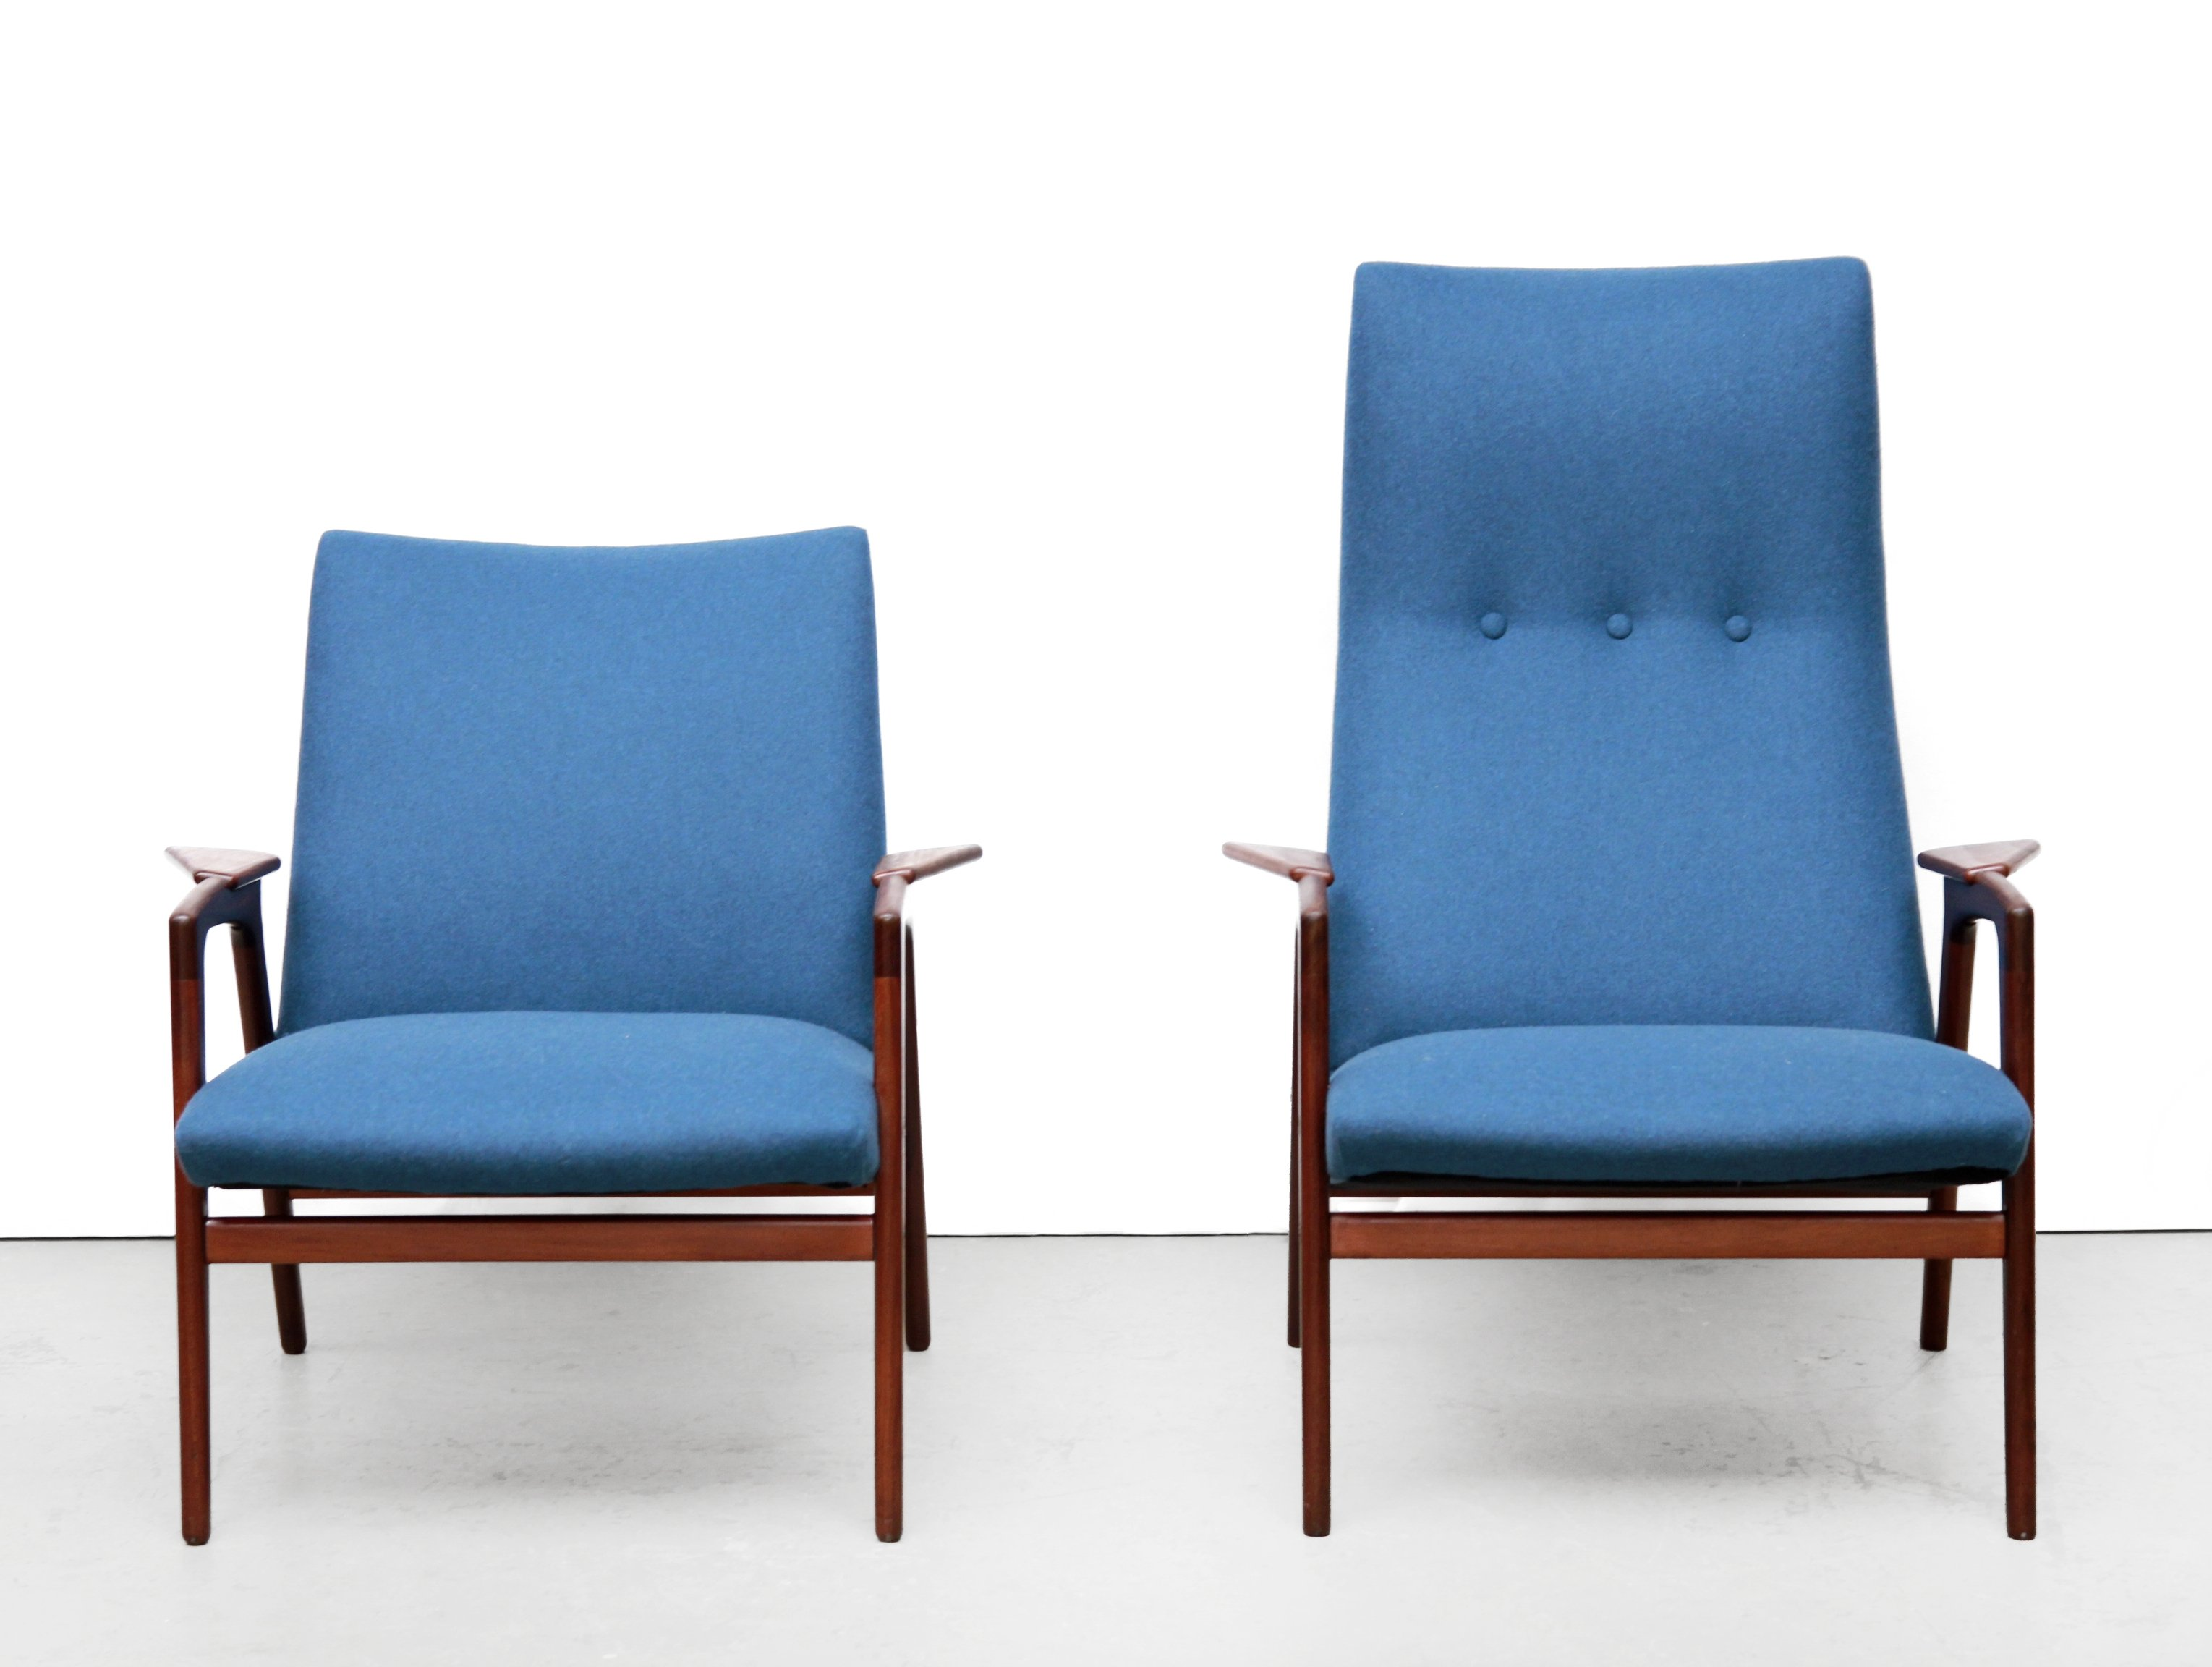 High Quality Pair Of Ruster Arm Chairs By Yngve Ekström For Pastoe, 1950s